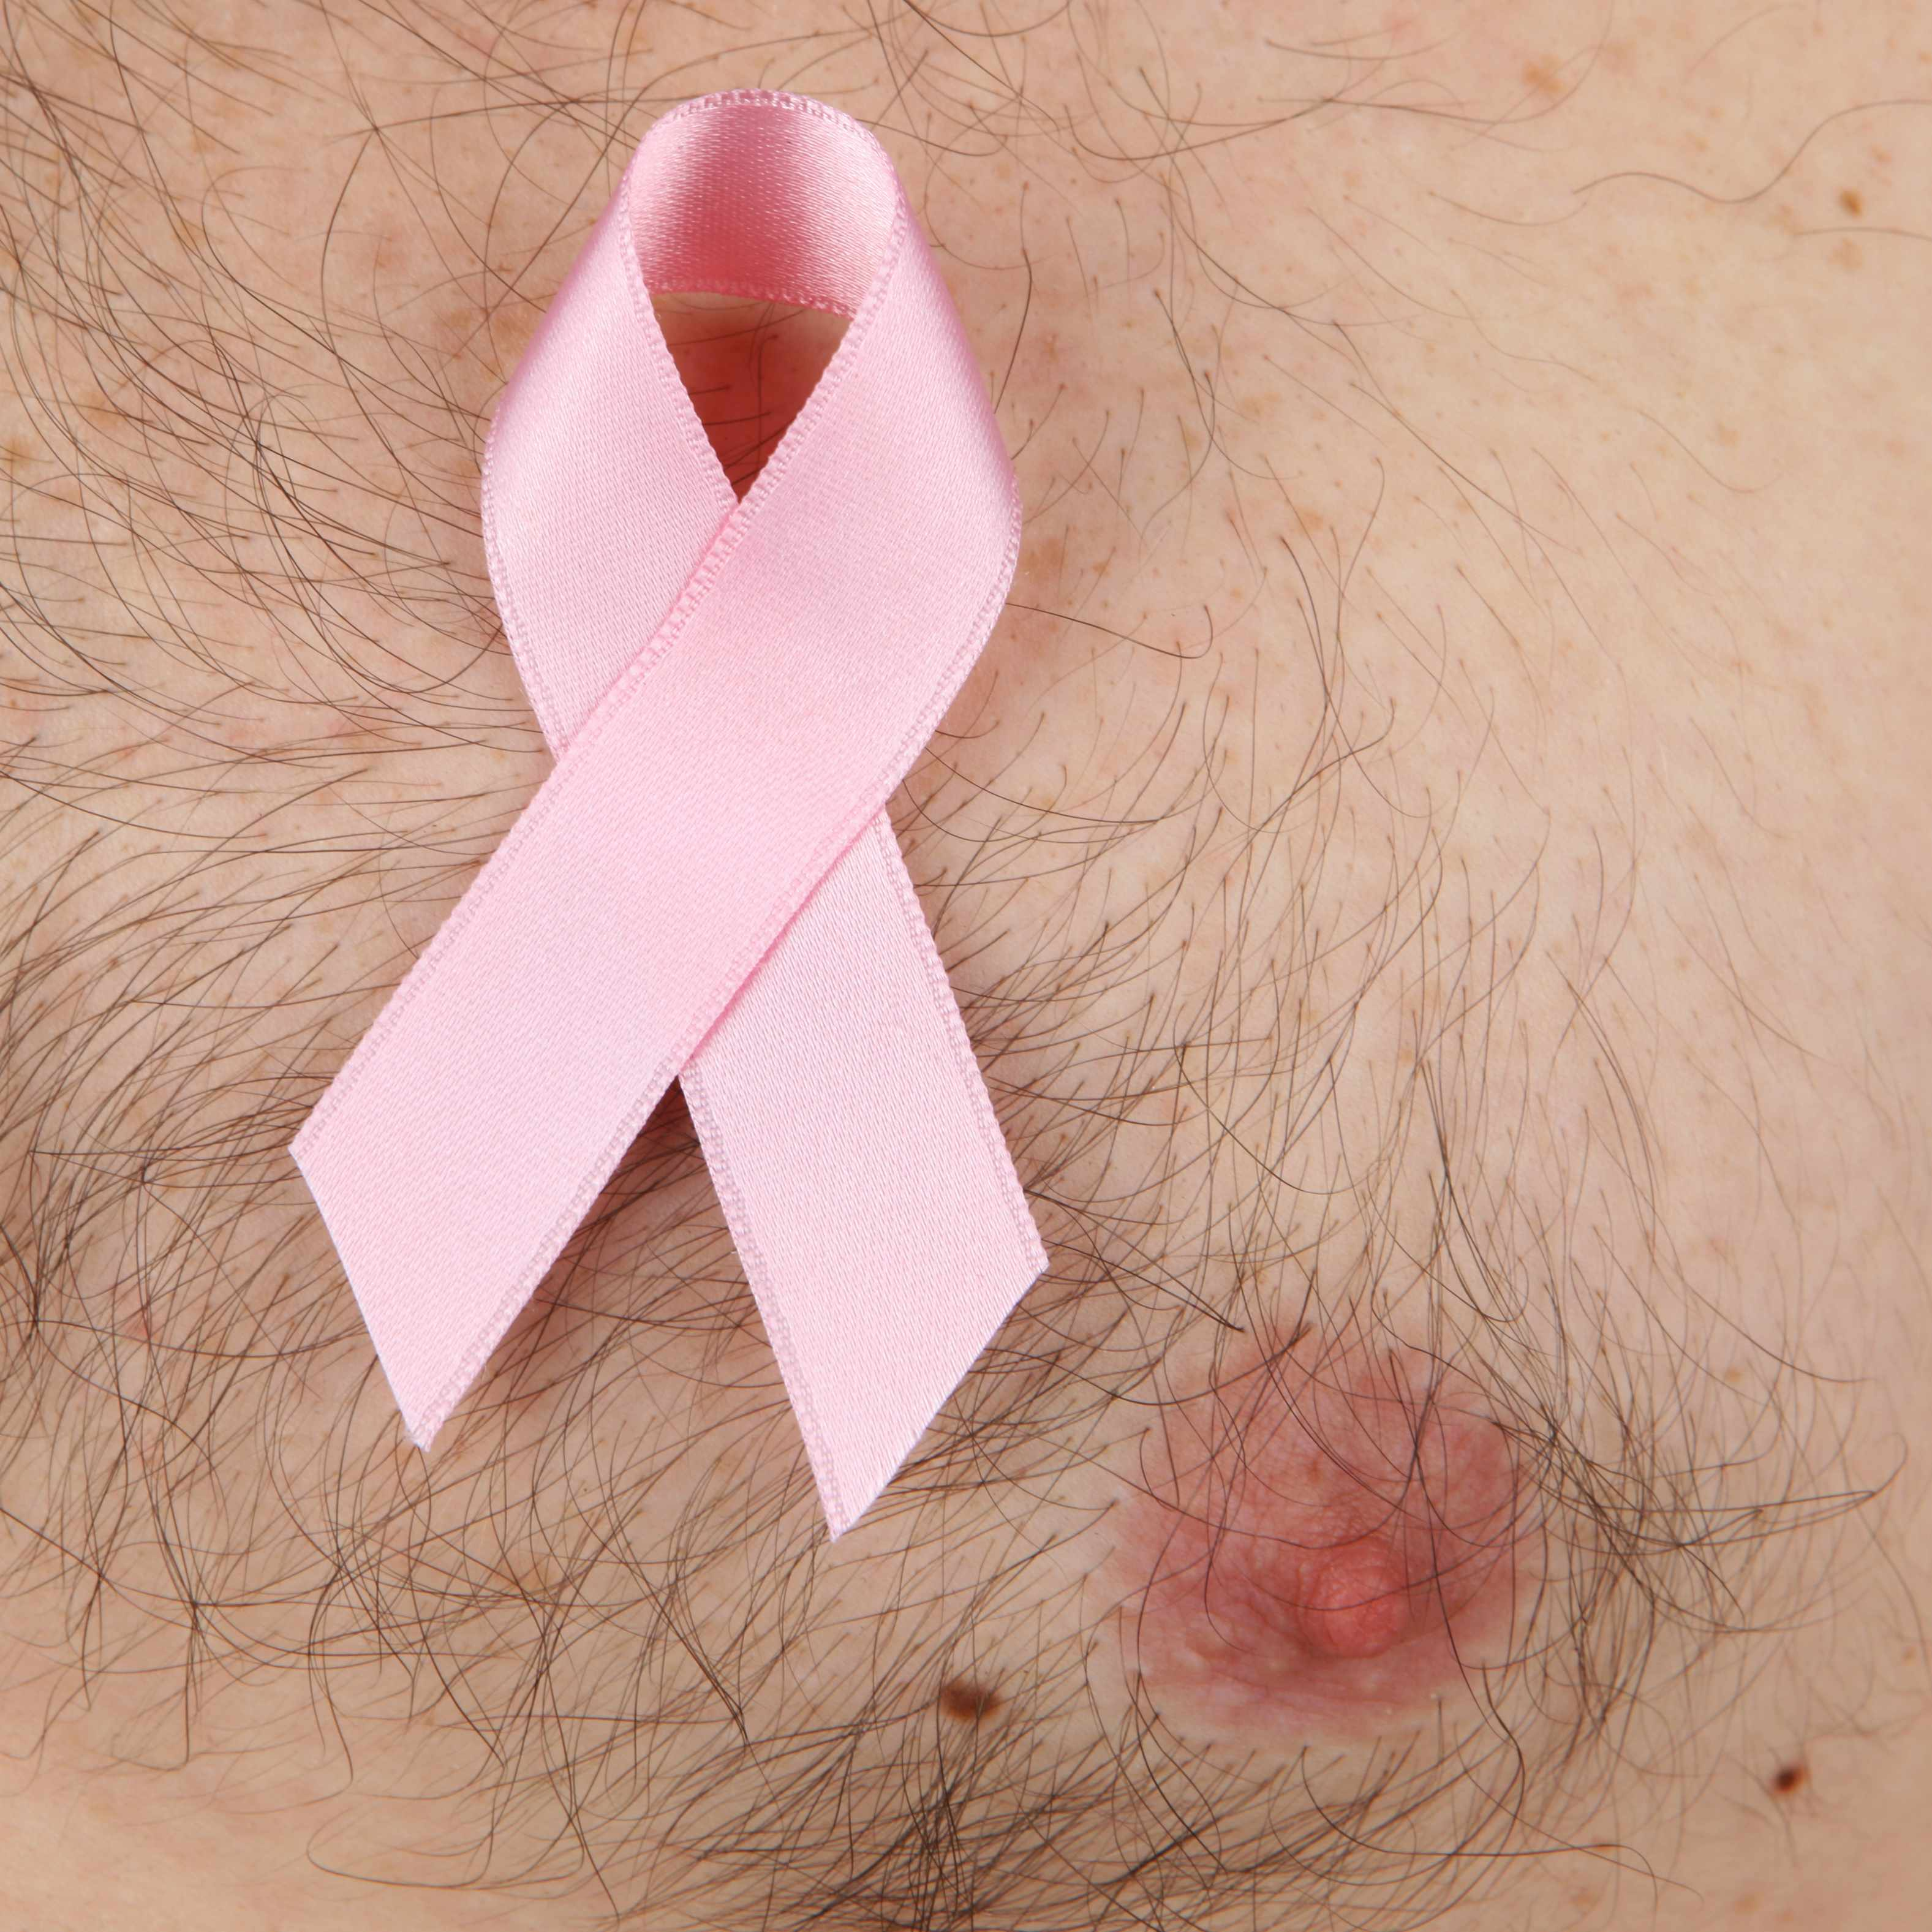 a man's chest with a pink breast cancer ribbon